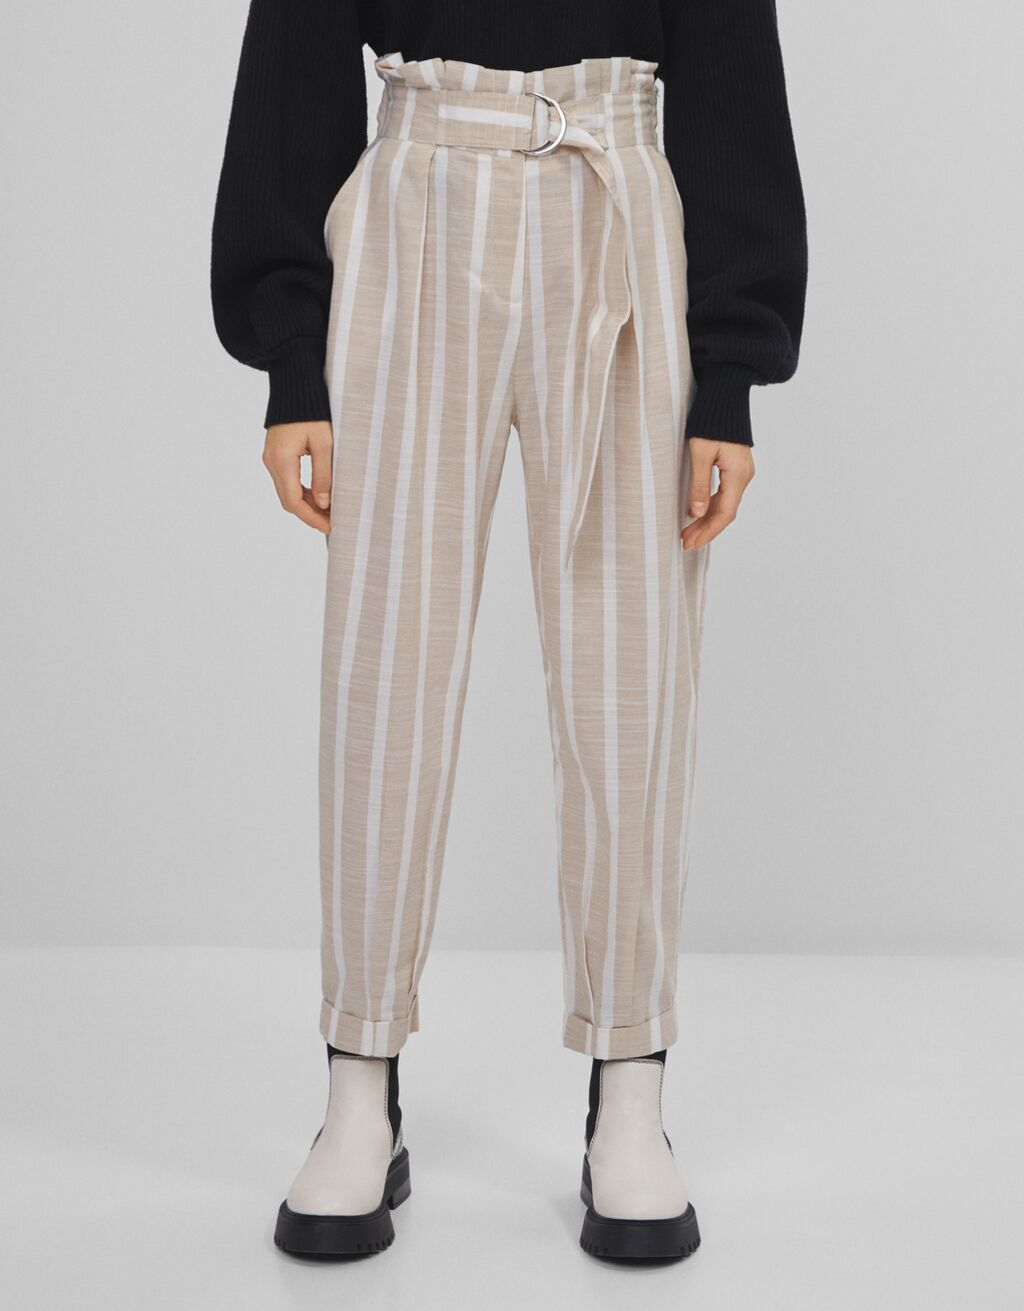 Slouchy trousers with belt